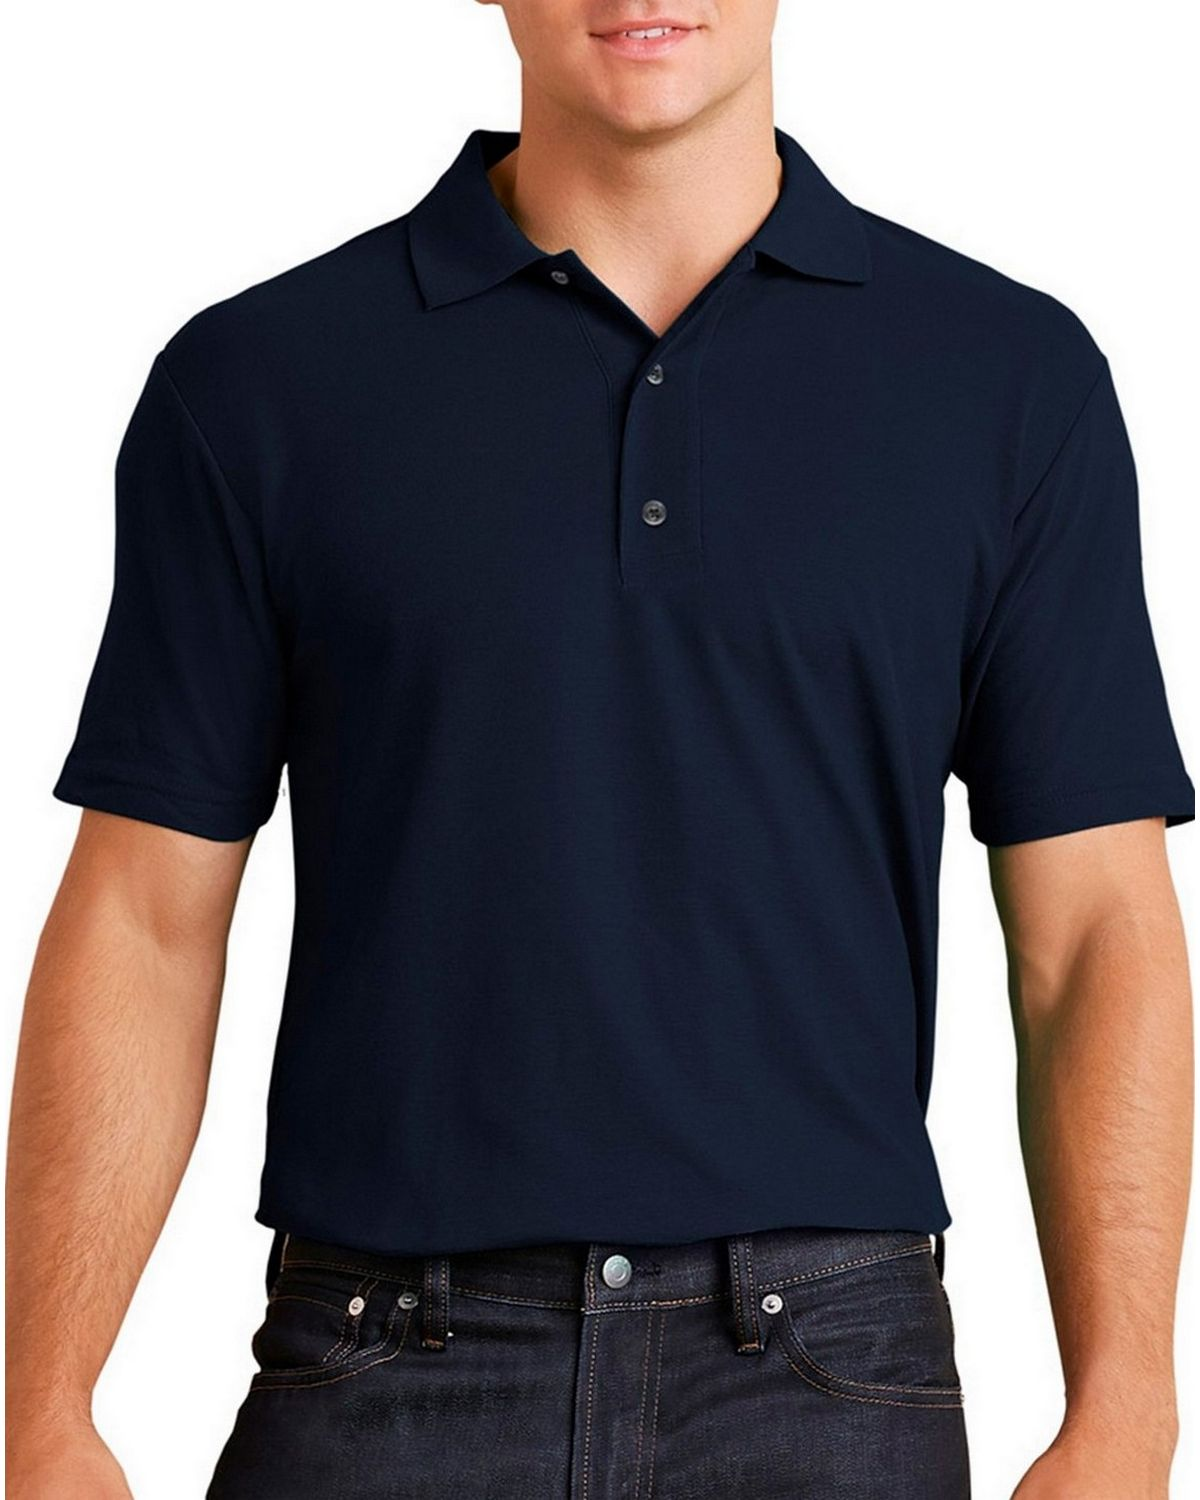 Gildan 44800 Performance Adult Jersey Polo - Marbled Navy - M 44800